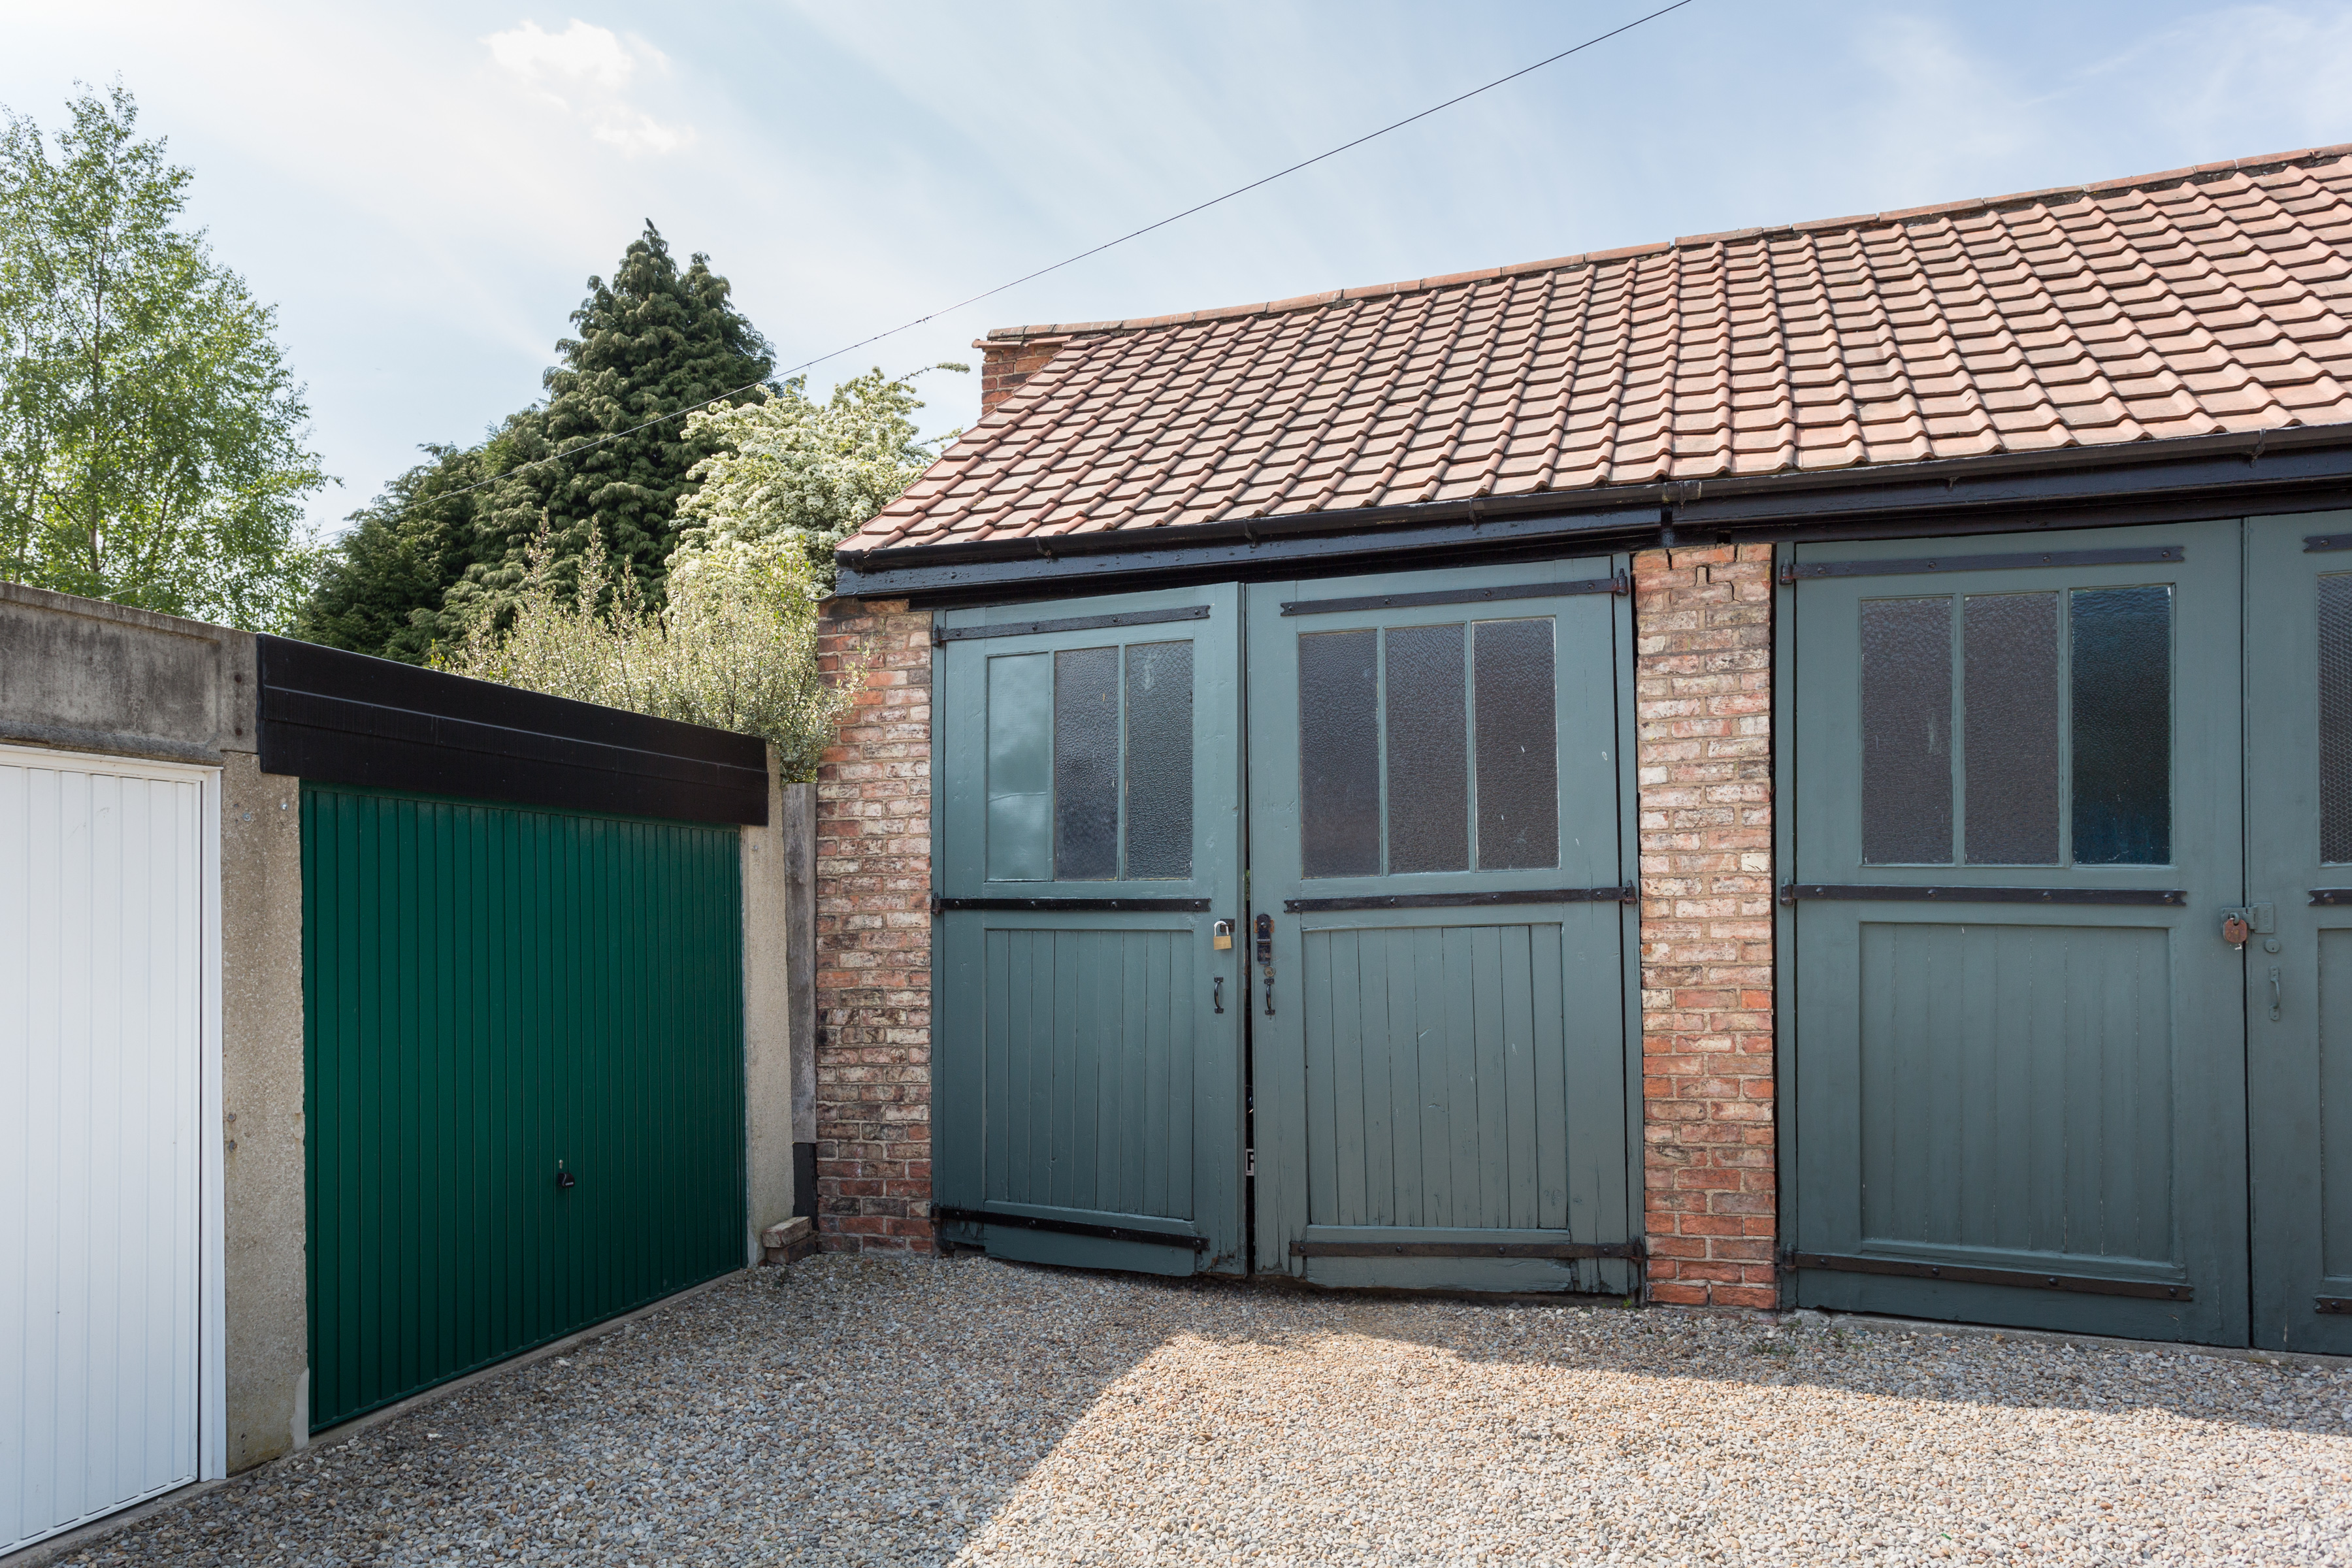 44 Burton Stone Lane, York - property for sale in York